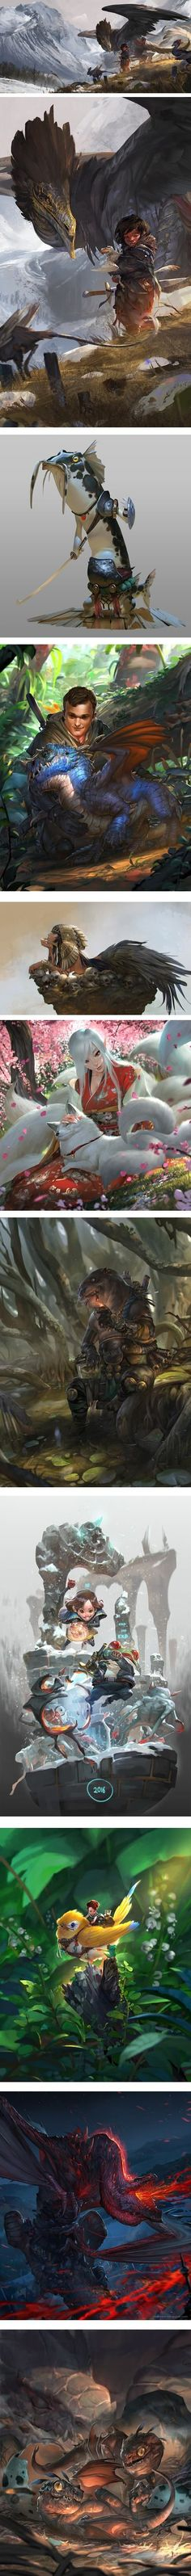 Rudy Siswanto, concept art, illustration: